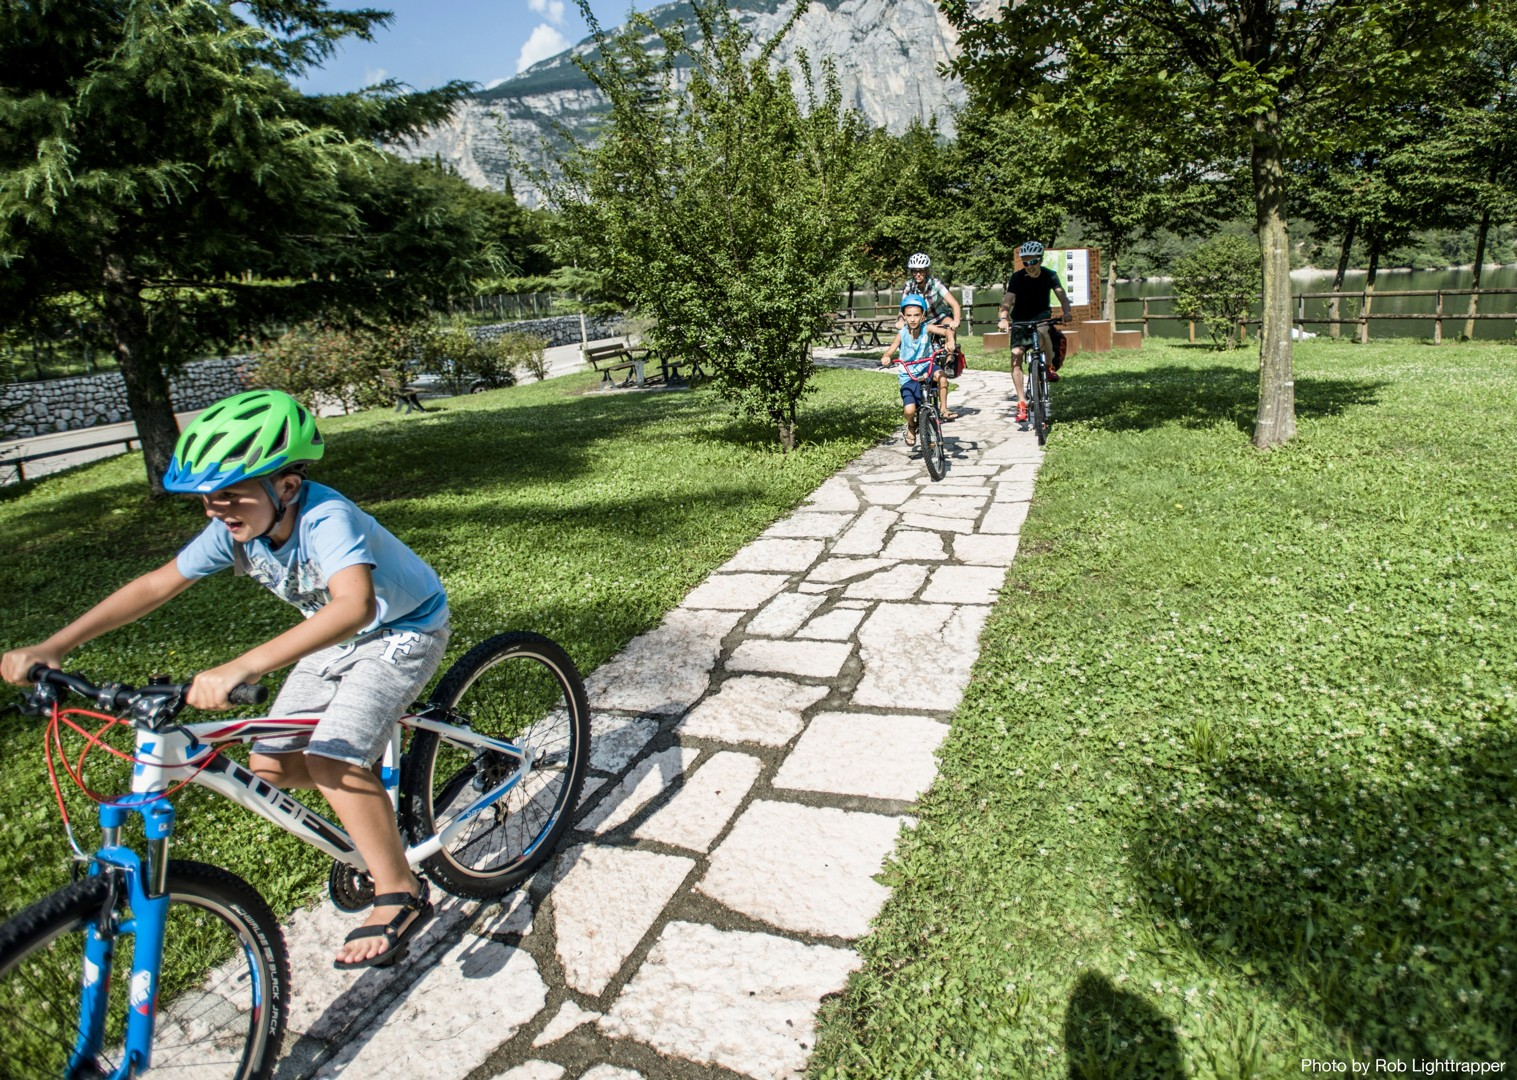 lake-garda-family-cycling-holiday-in-italy-la-via-claudia.jpg - Italy - La Via Claudia - Self-Guided Family Cycling Holiday - Family Cycling